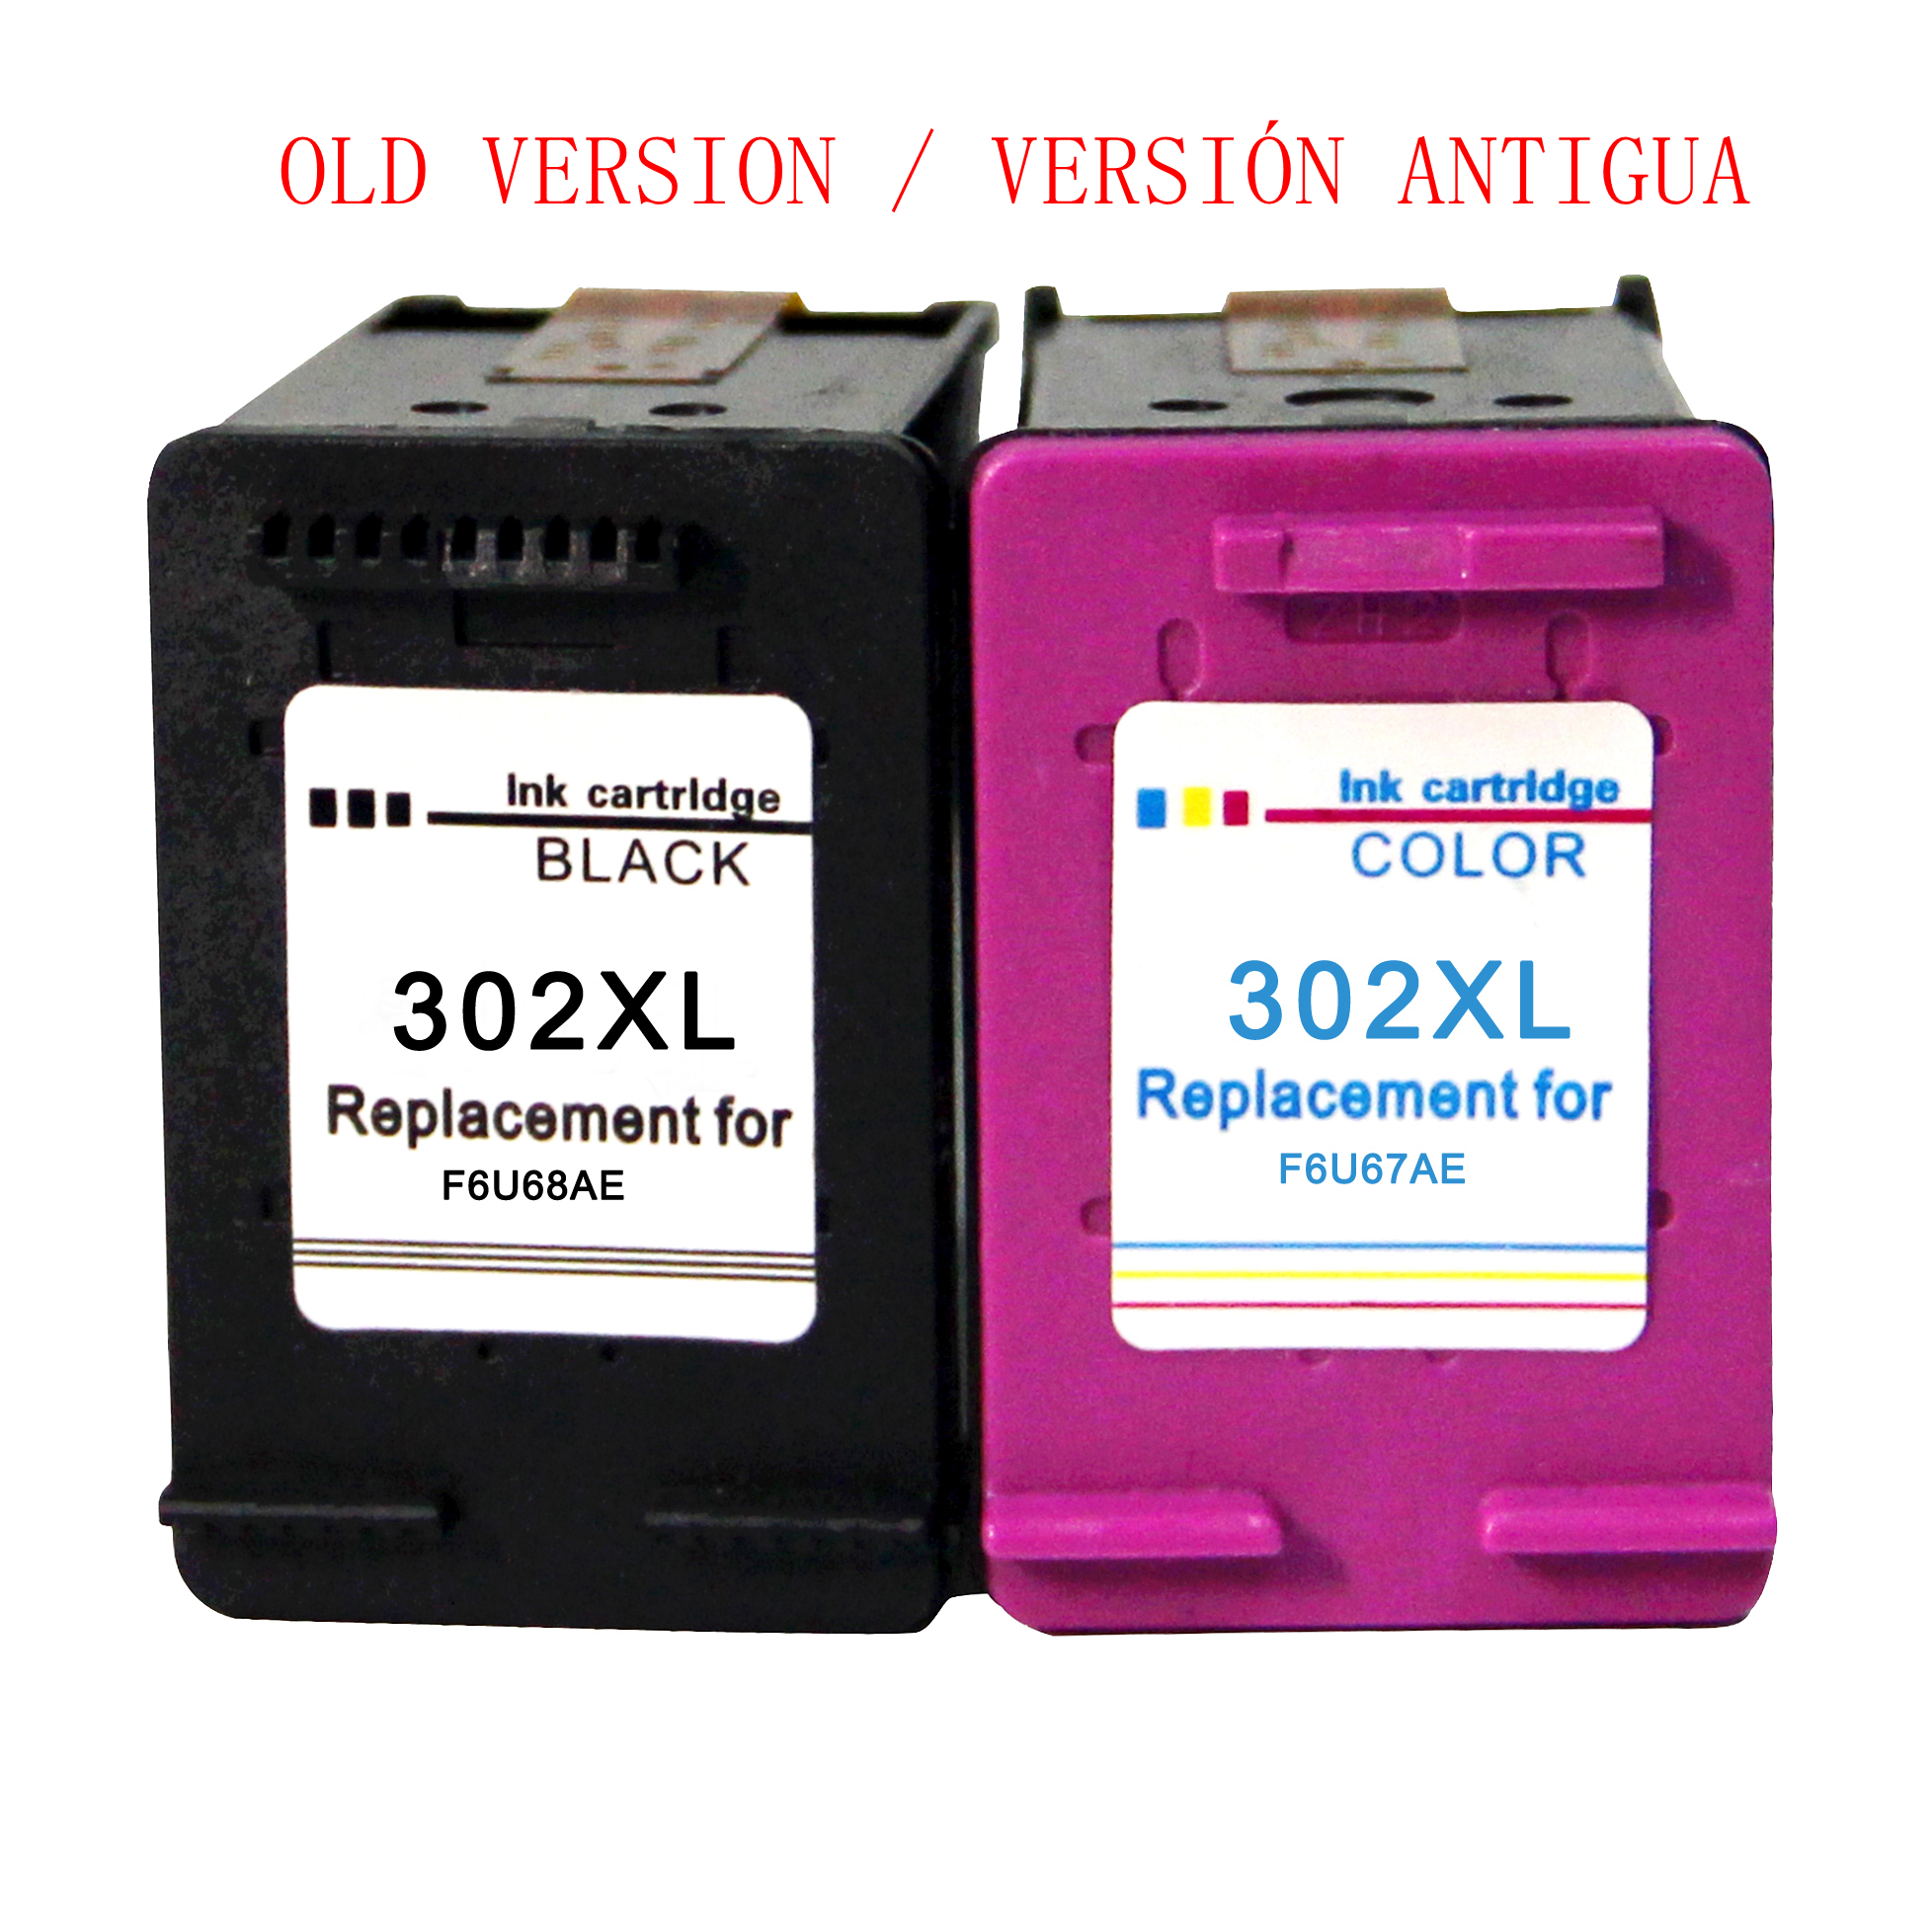 Remanufactured <font><b>HP</b></font> 302 XL ink cartridges for <font><b>HP</b></font> OfficeJet 3831 3833 <font><b>DeskJet</b></font> 1110 2130 3630 <font><b>3639</b></font> 3633 3636 Envy 4520 4524 image